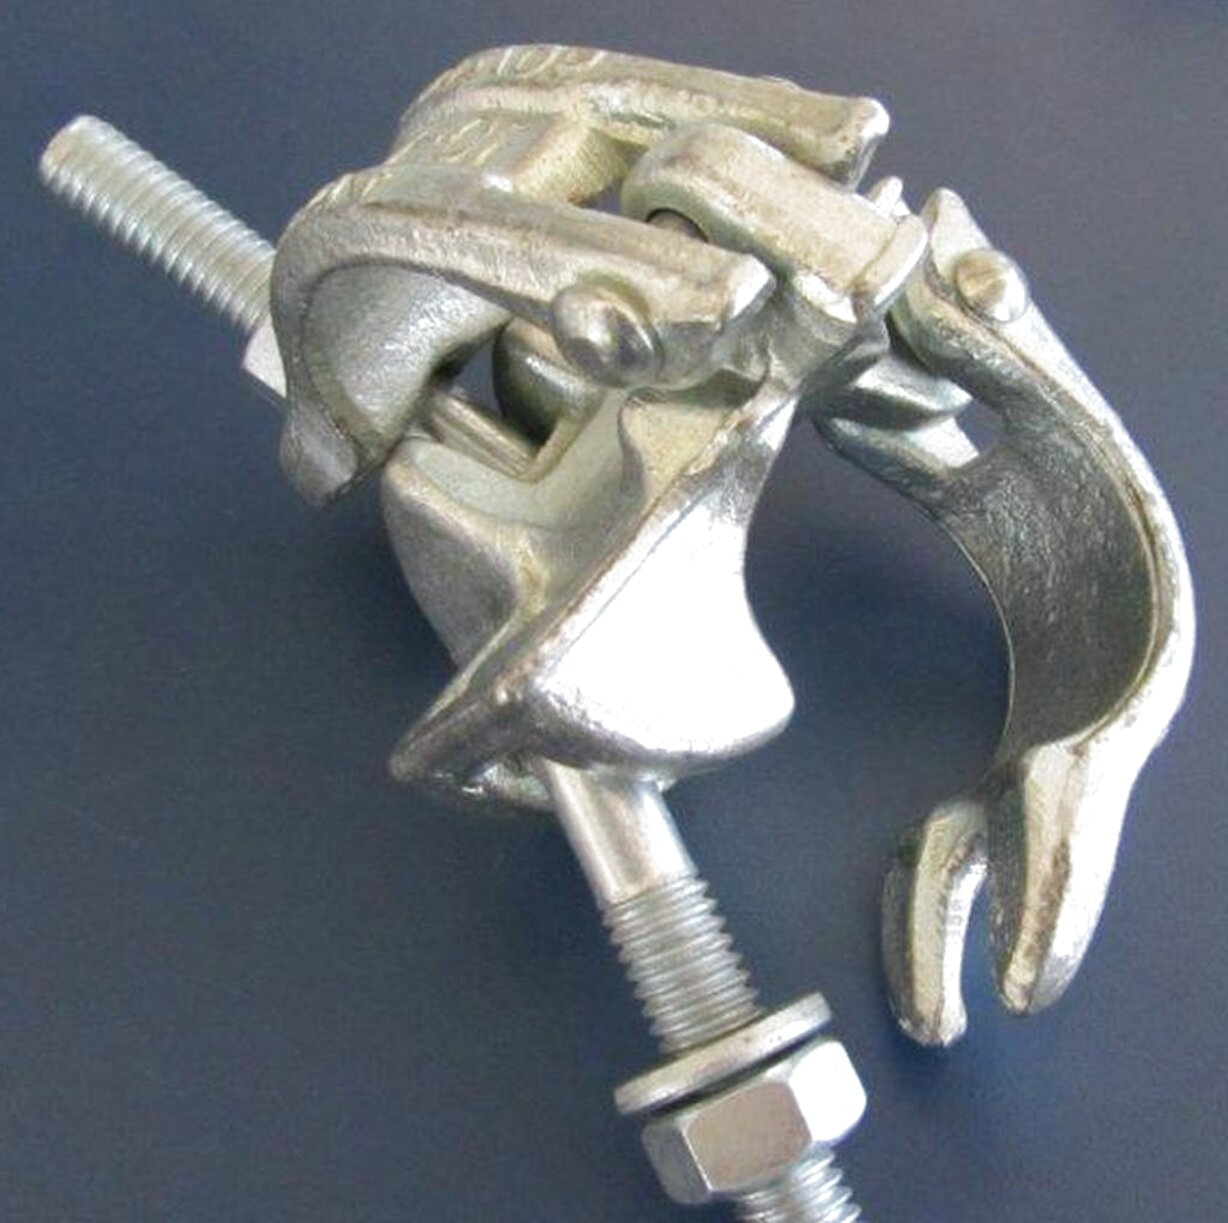 scaffolding clamps for sale